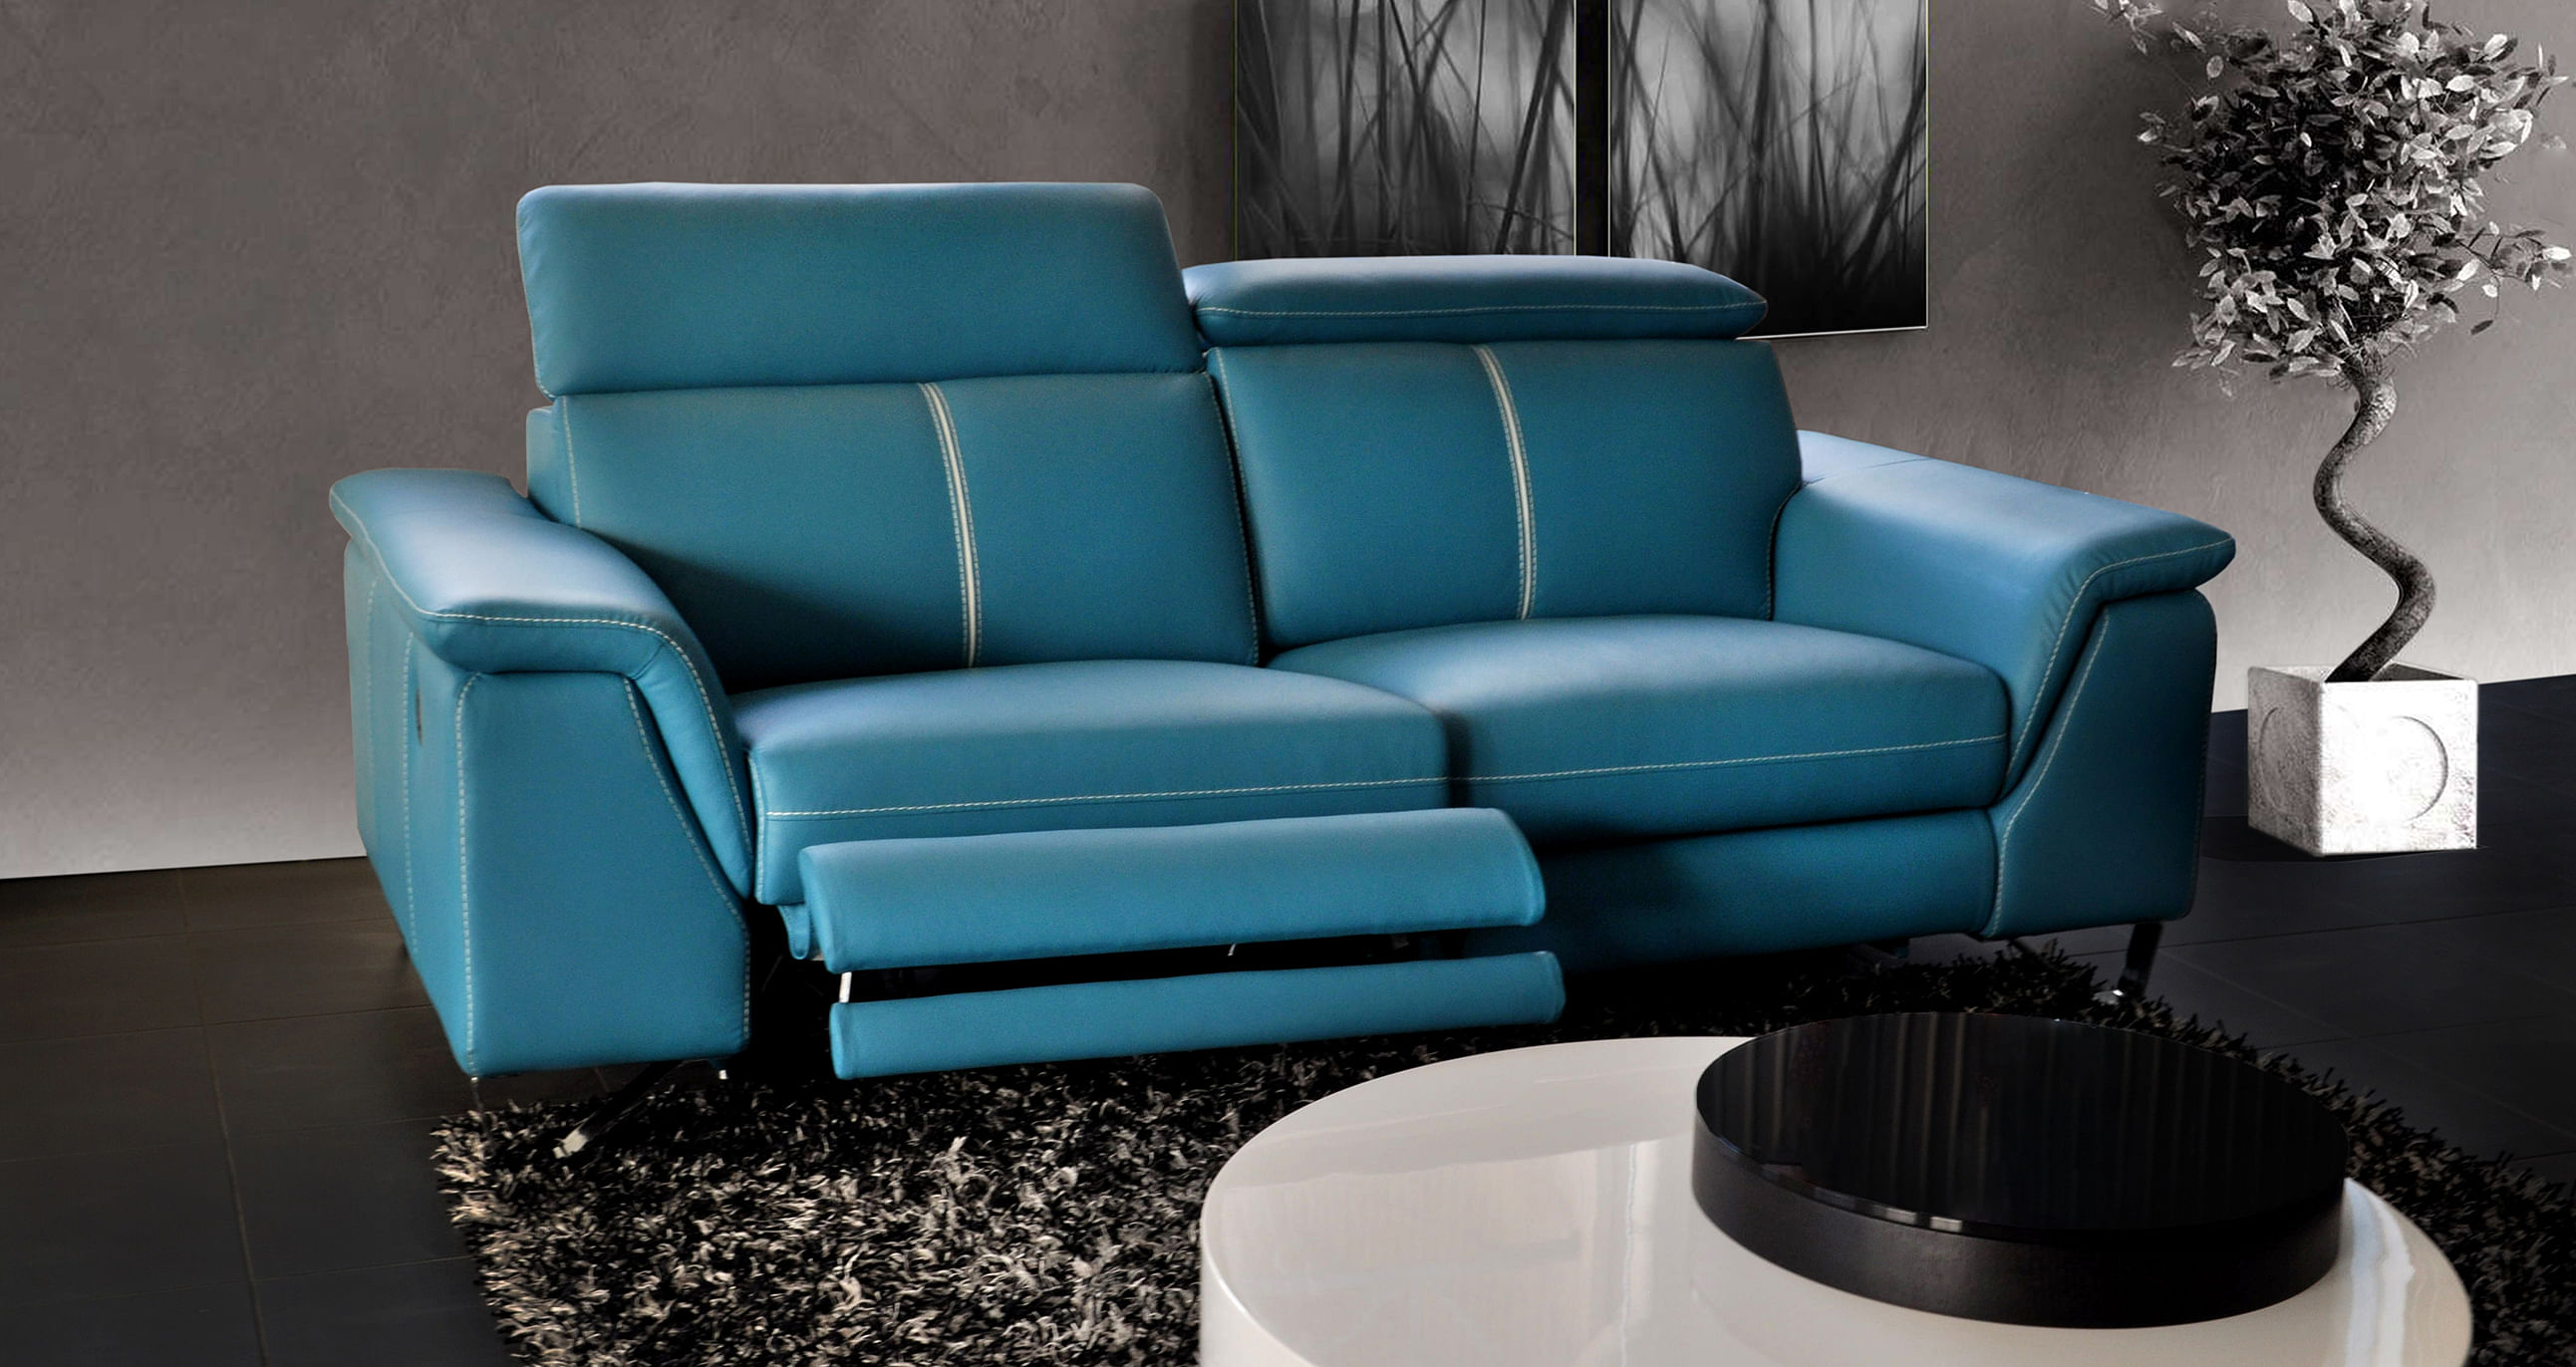 Be different – make your living room unique with these leather